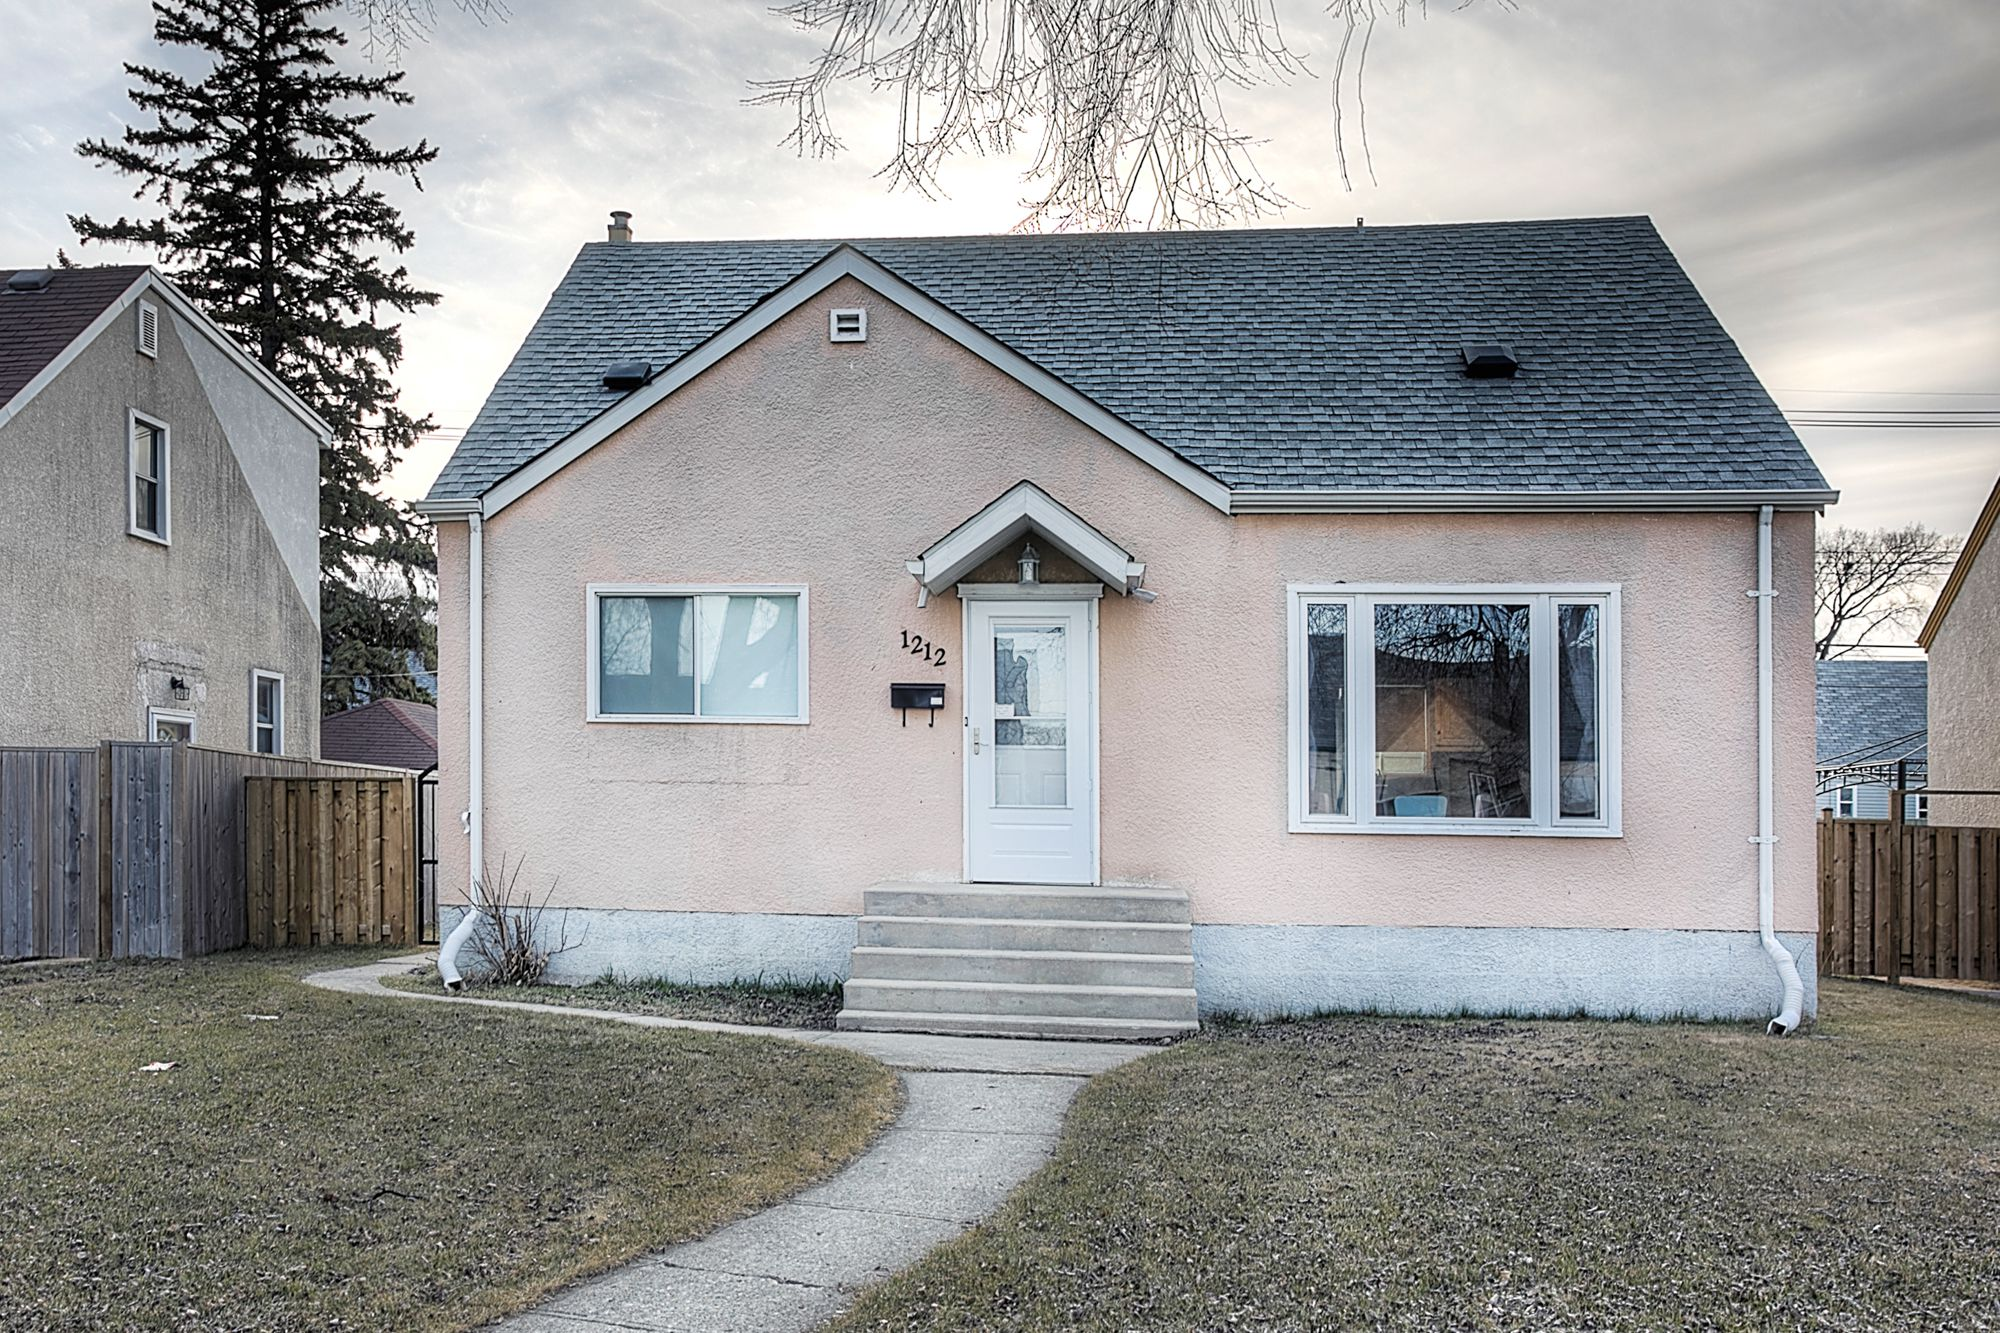 Main Photo: 1212 Ashburn Avenue in Winnipeg: Polo Park Single Family Detached for sale (5C)  : MLS®# 1909250